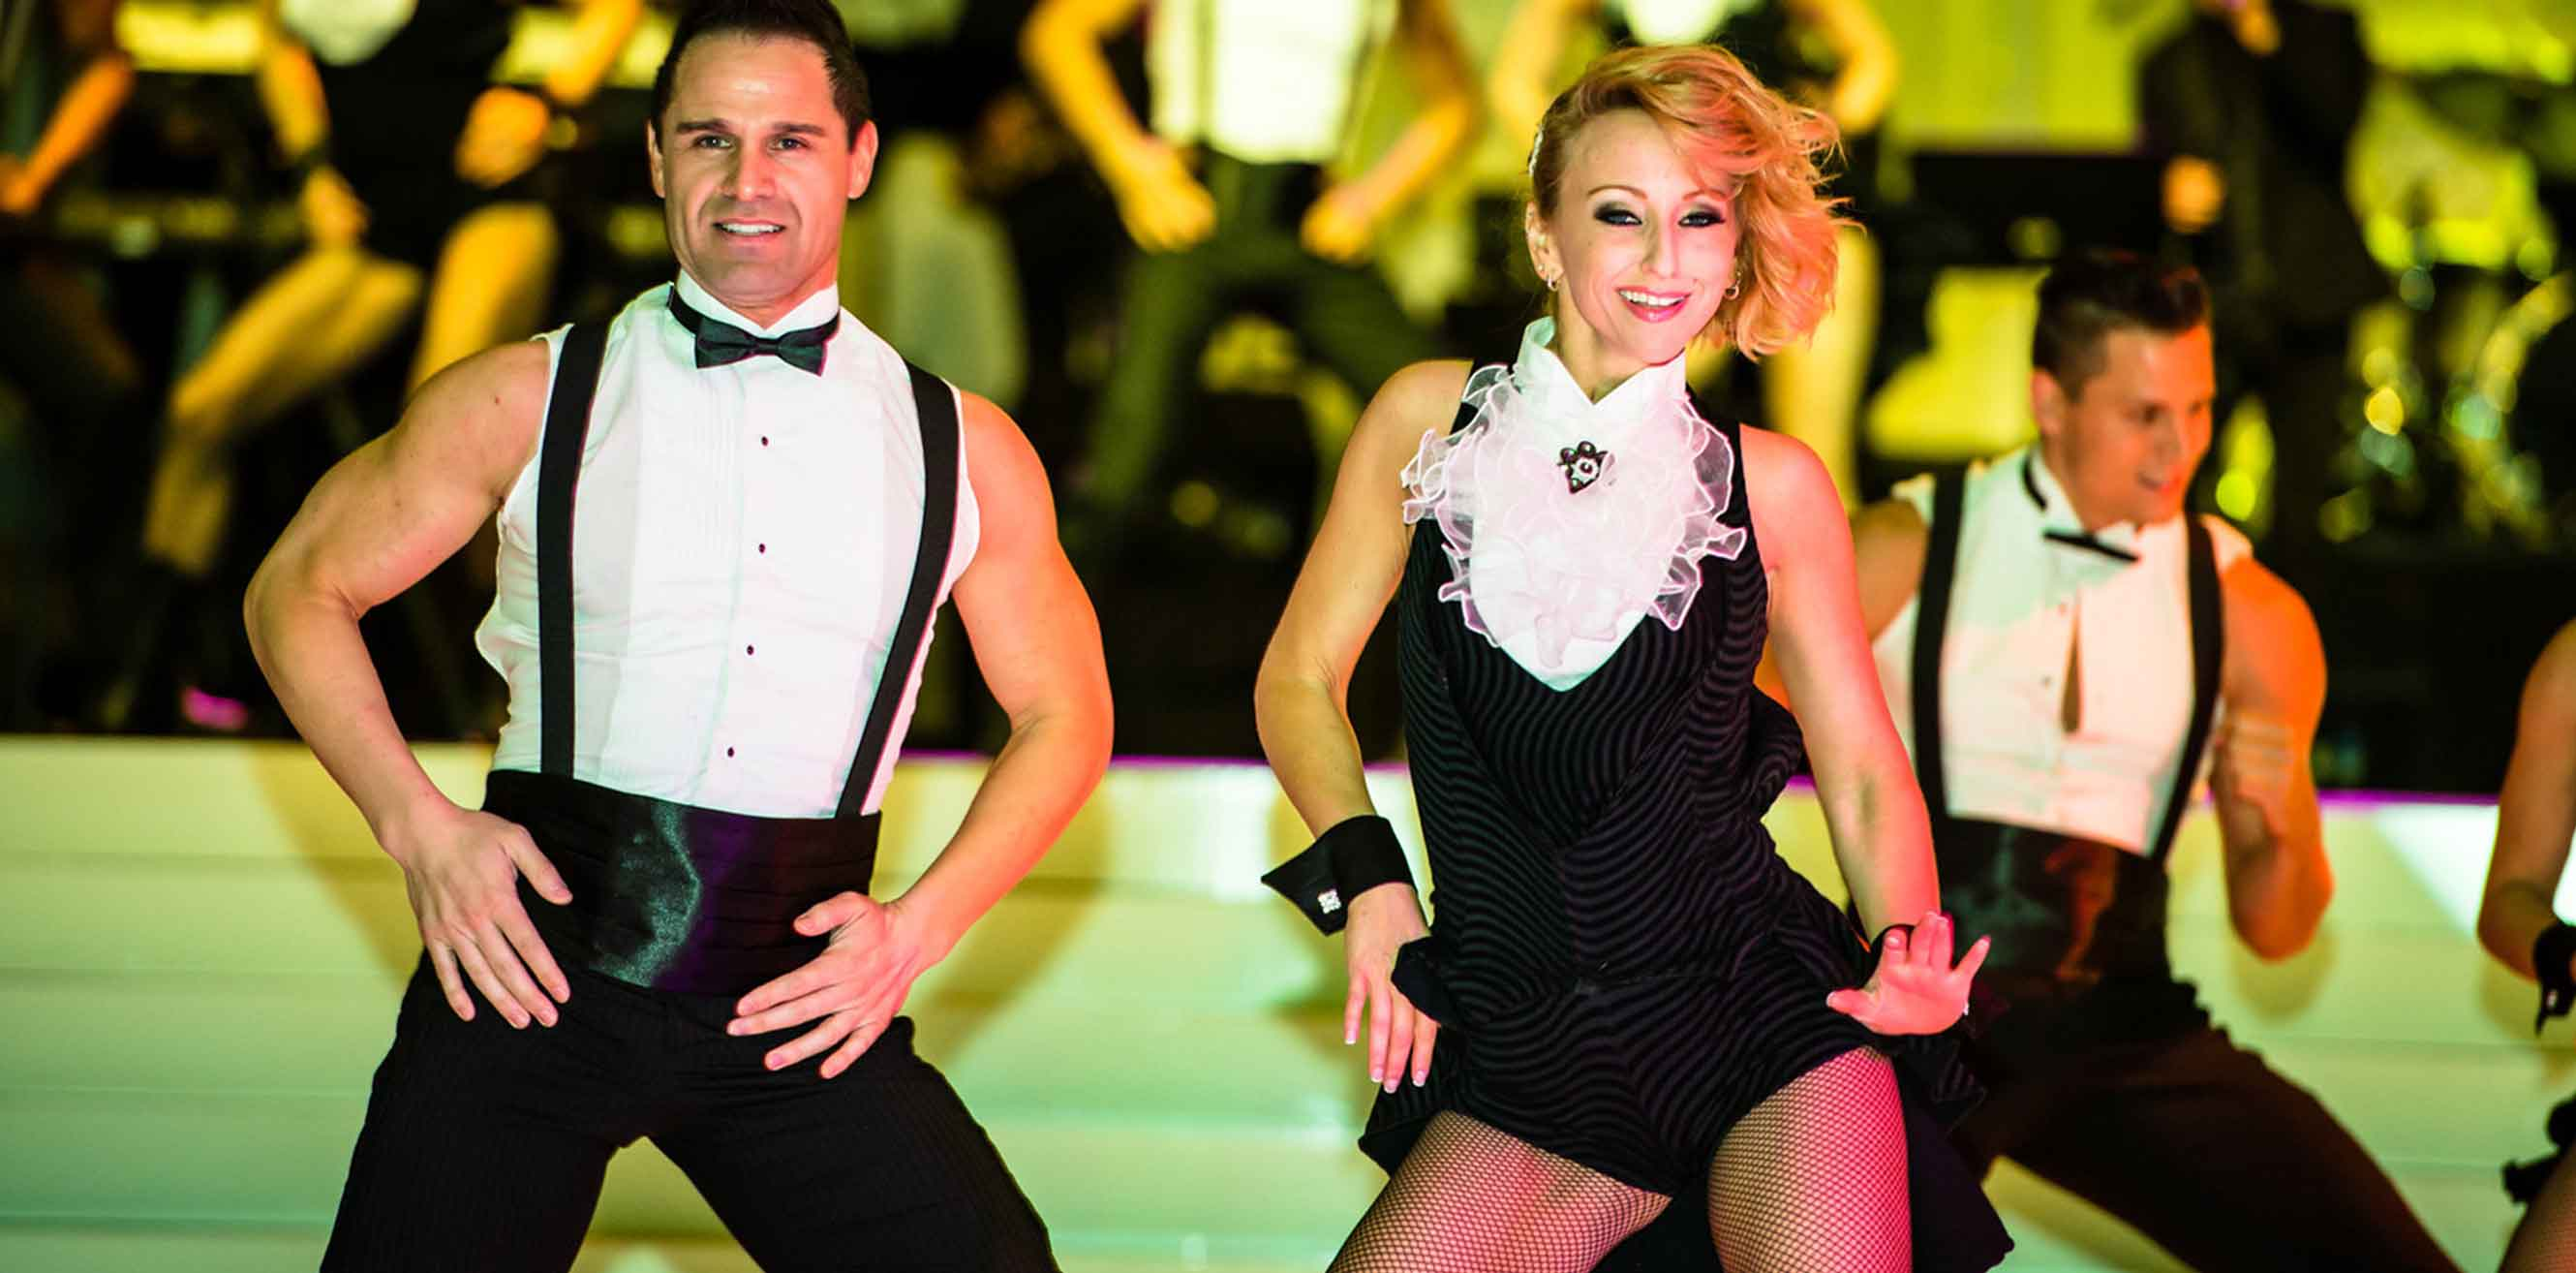 Close up of a pair of dancers in a tuxedo inspired costume